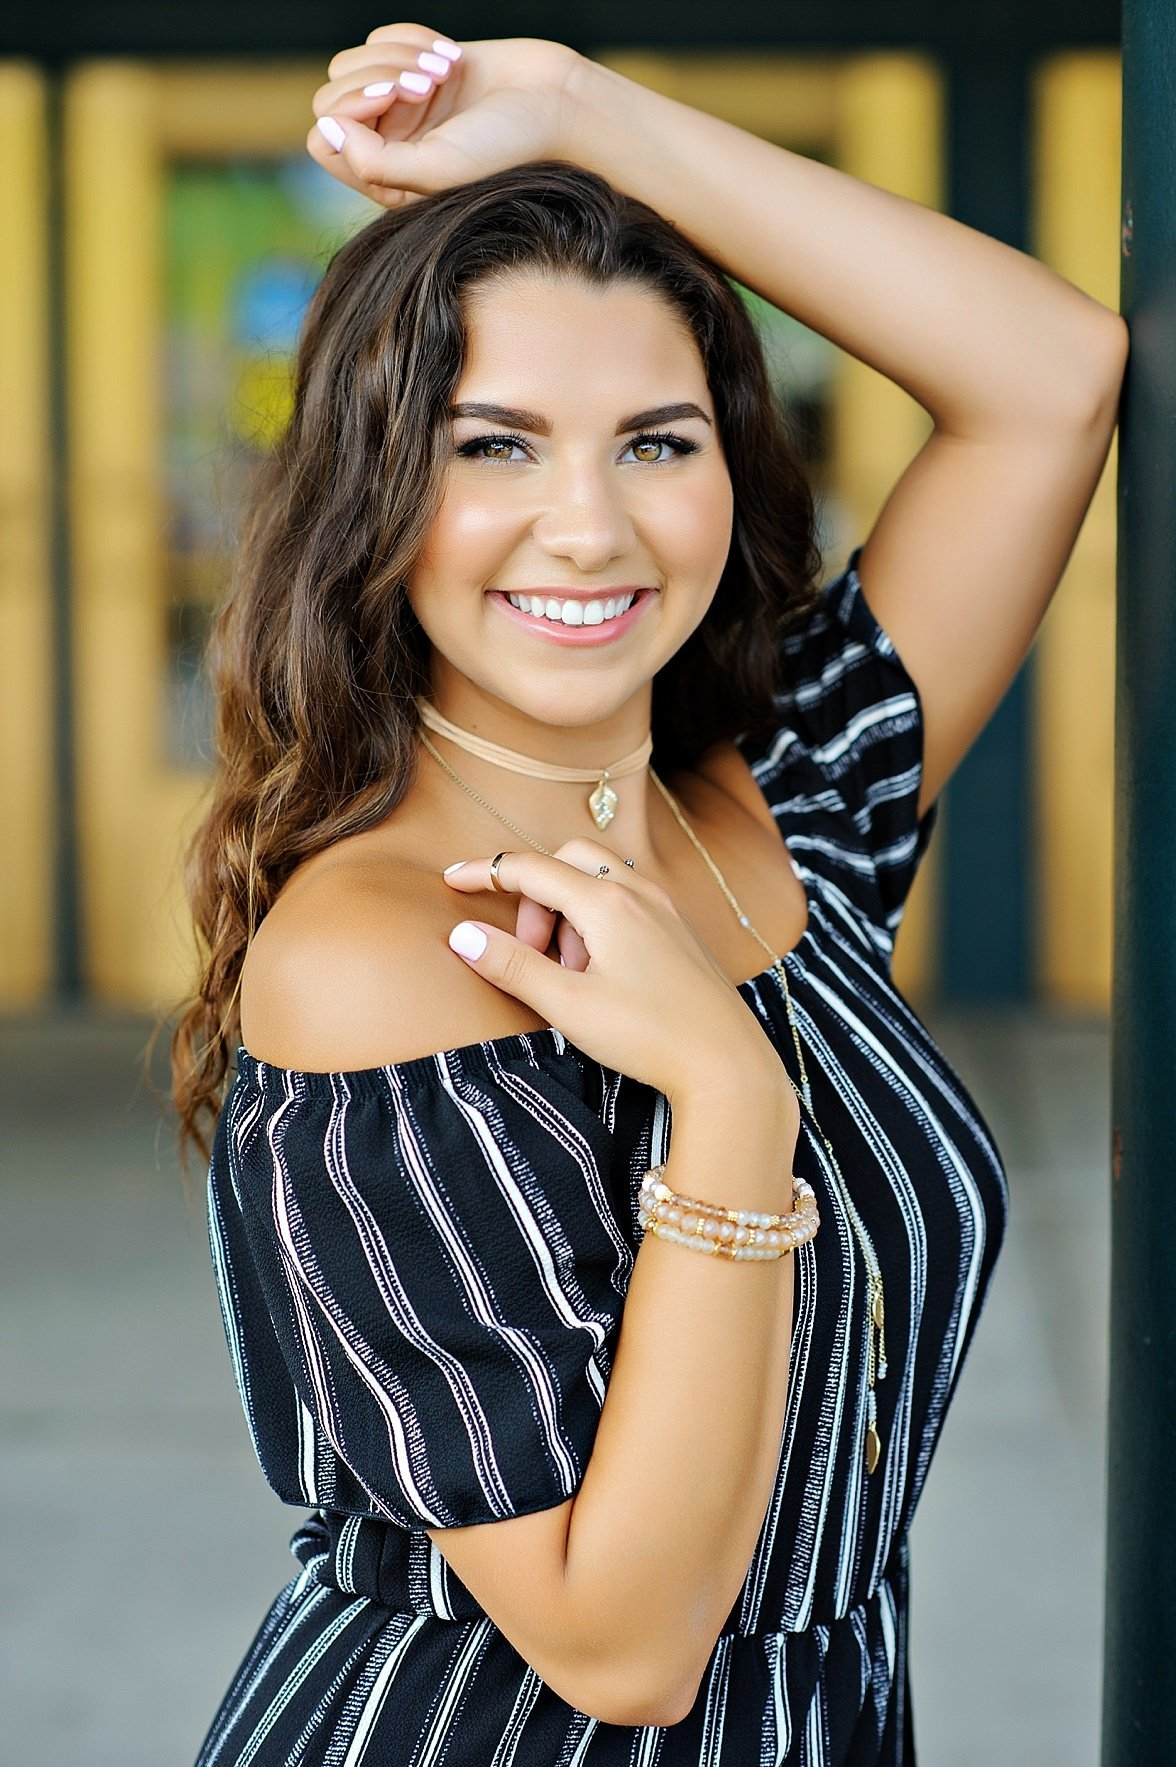 AYSIA-29_kansas city senior portrait photographer